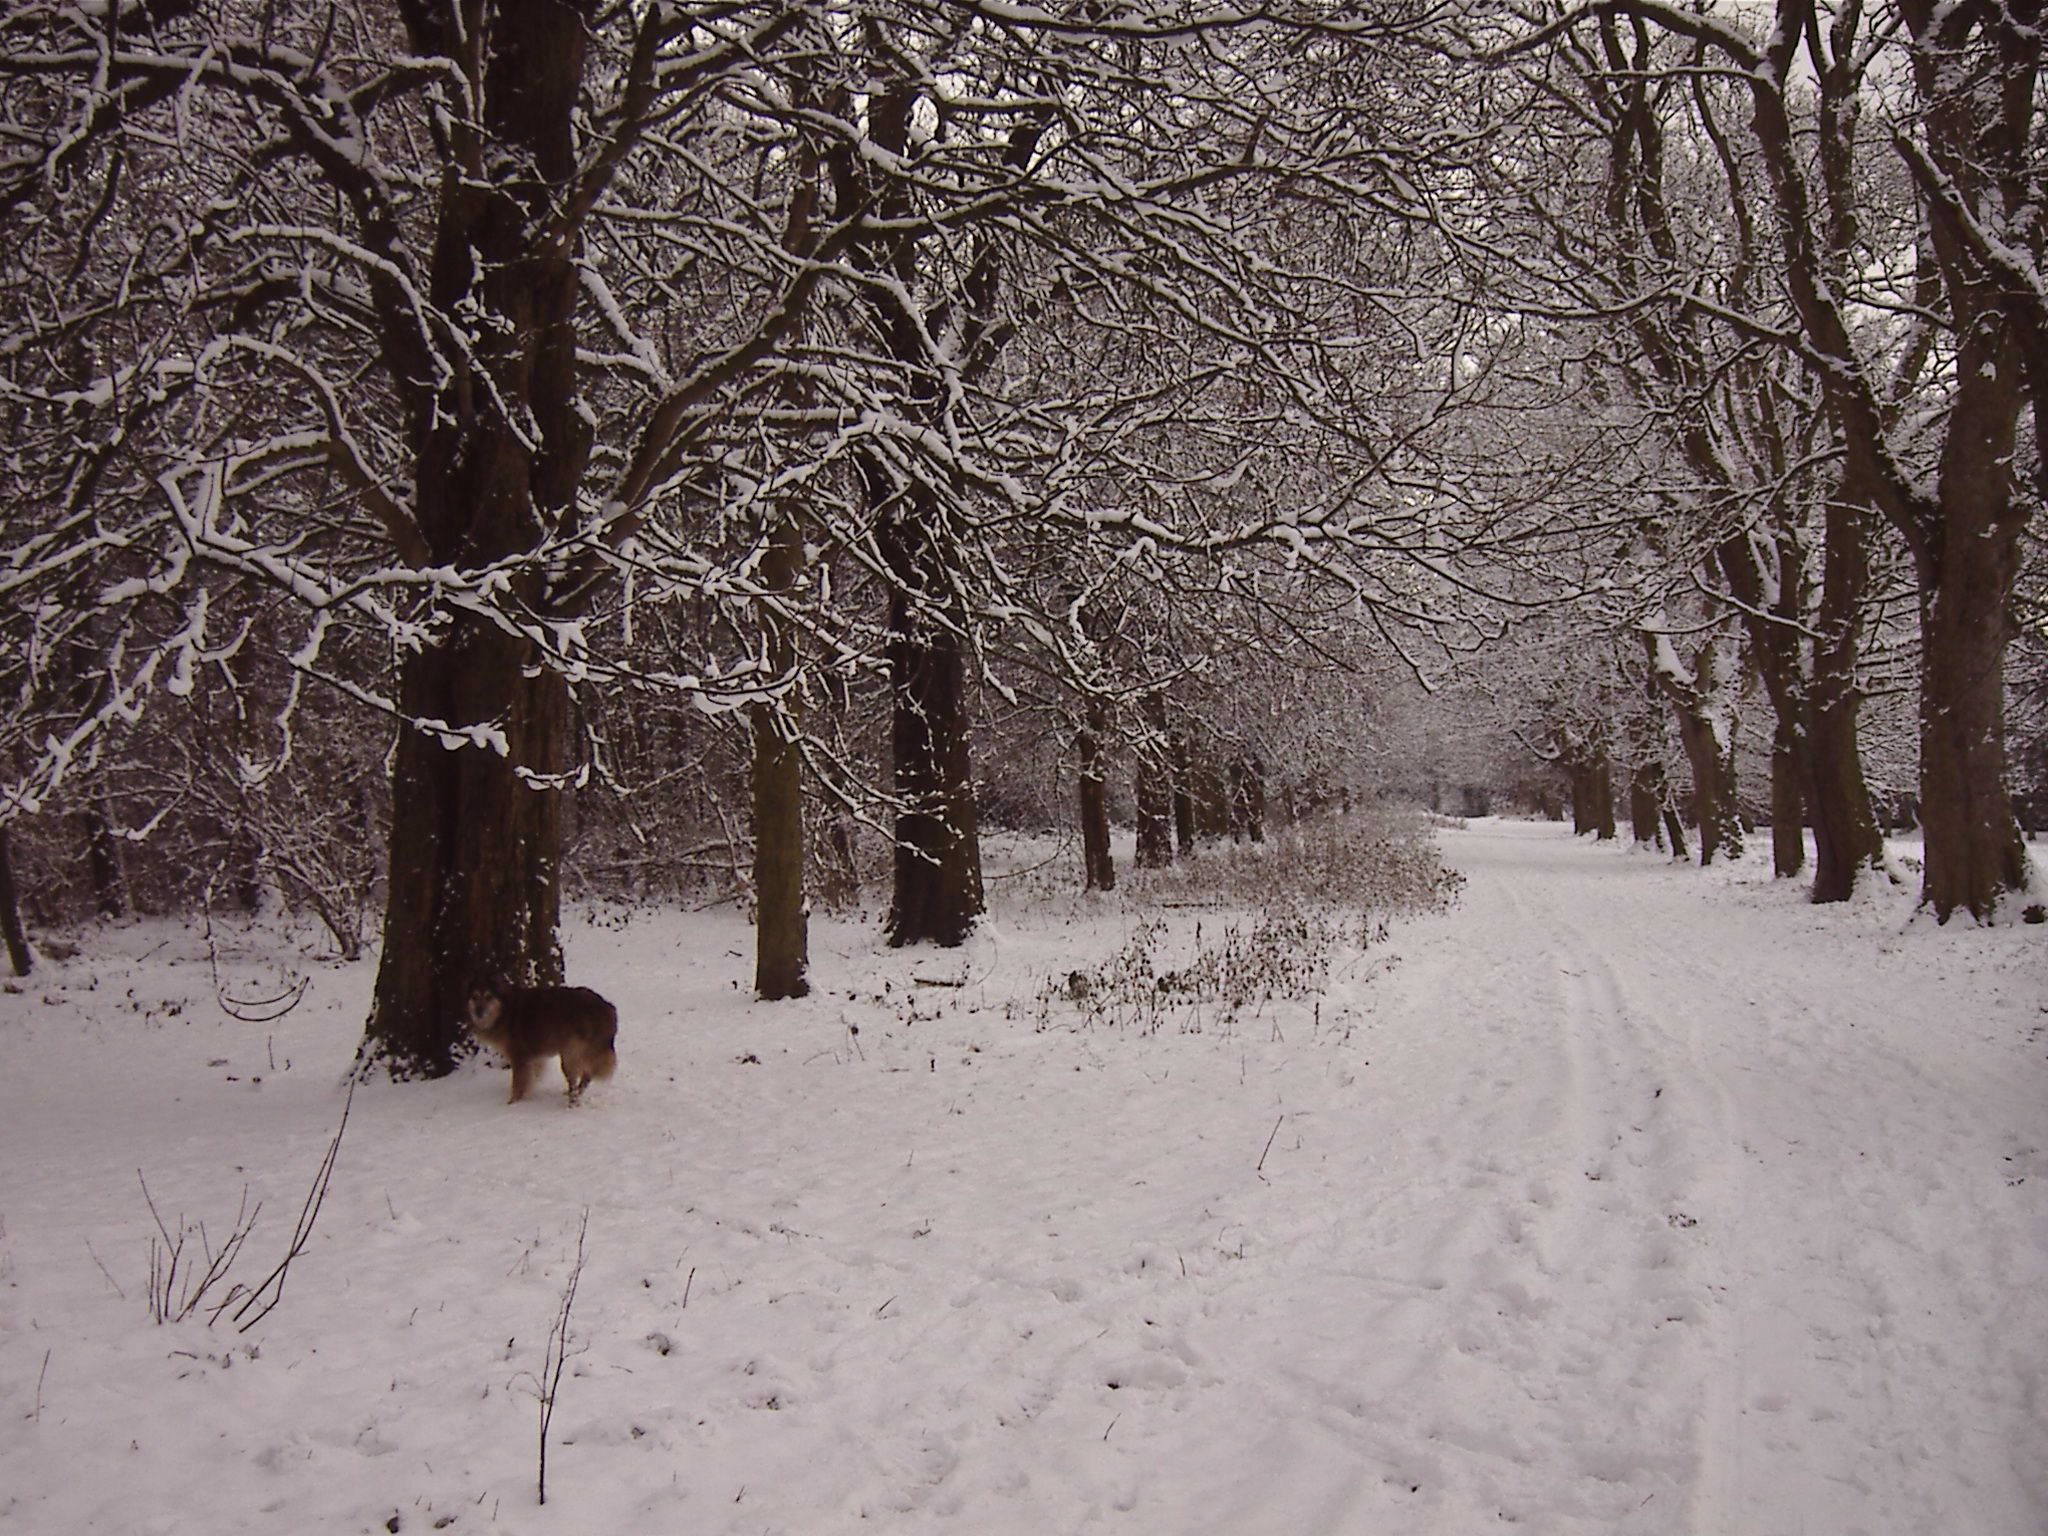 Max and Avenue of Snow 1 - Clarks Gardens Woolton 18th December 2010